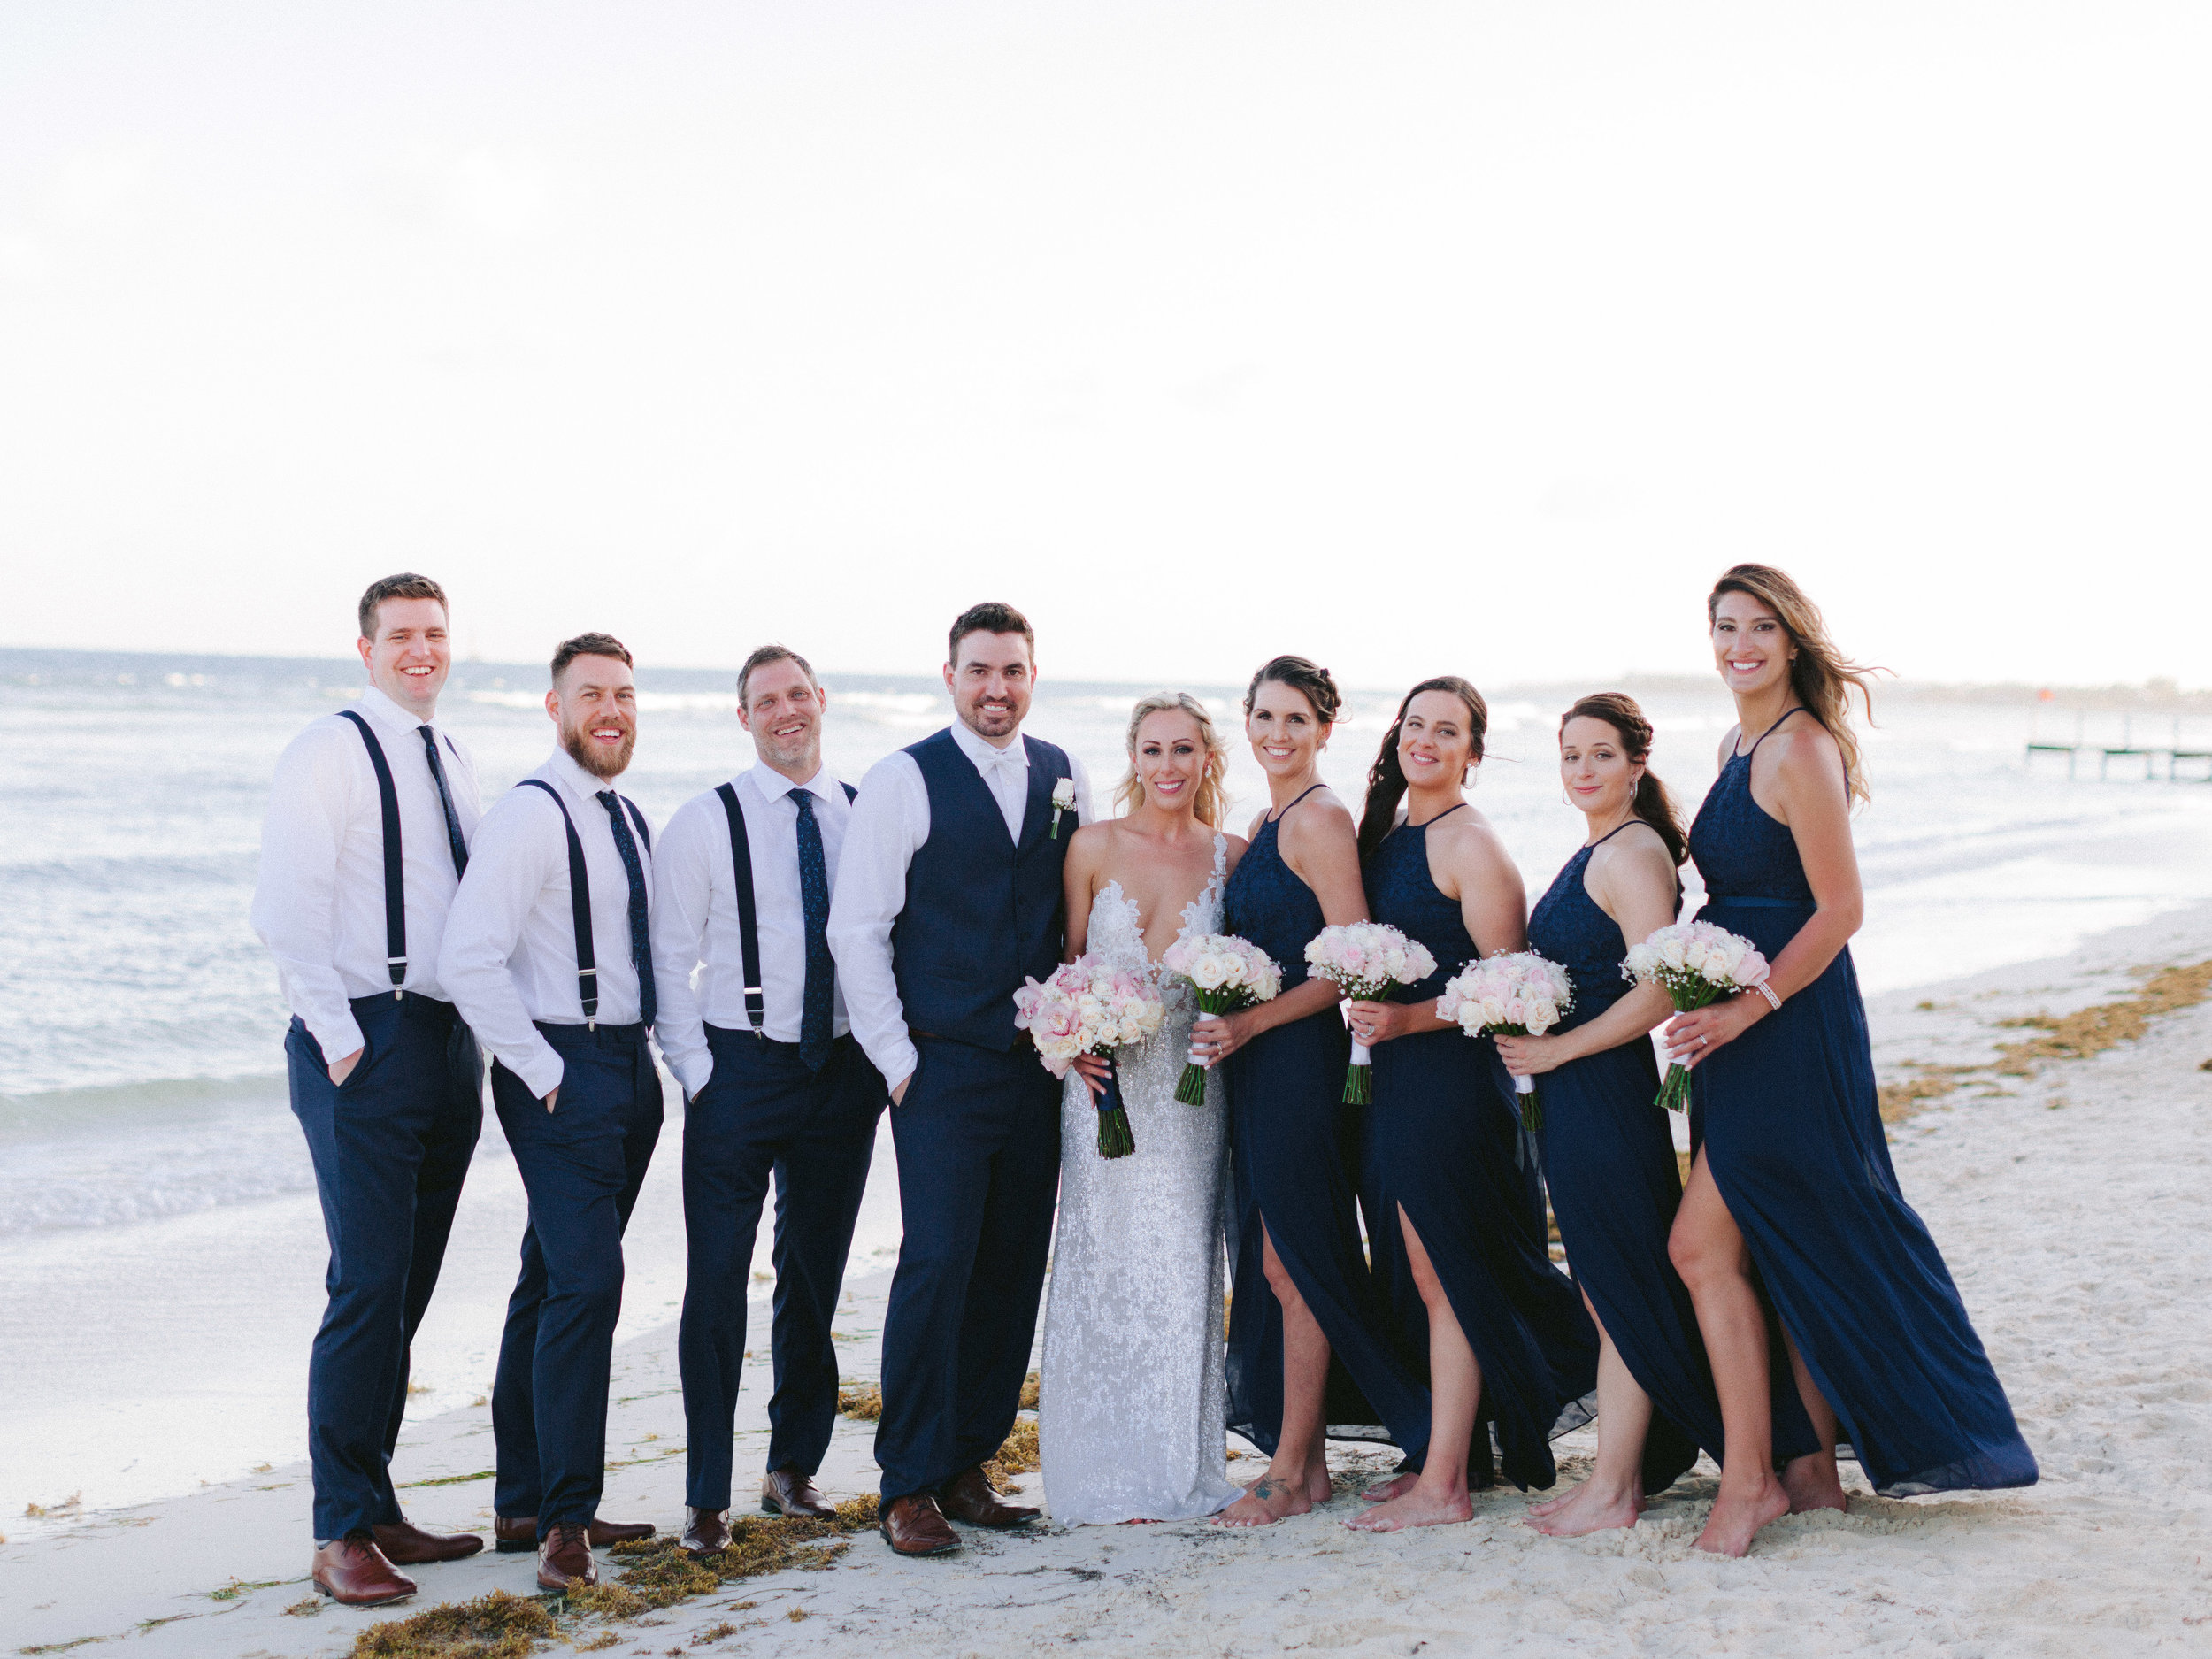 Kim_Jeff_Cancun Wedding_Portraits_Kurtz_Orpia (107 of 178).jpg